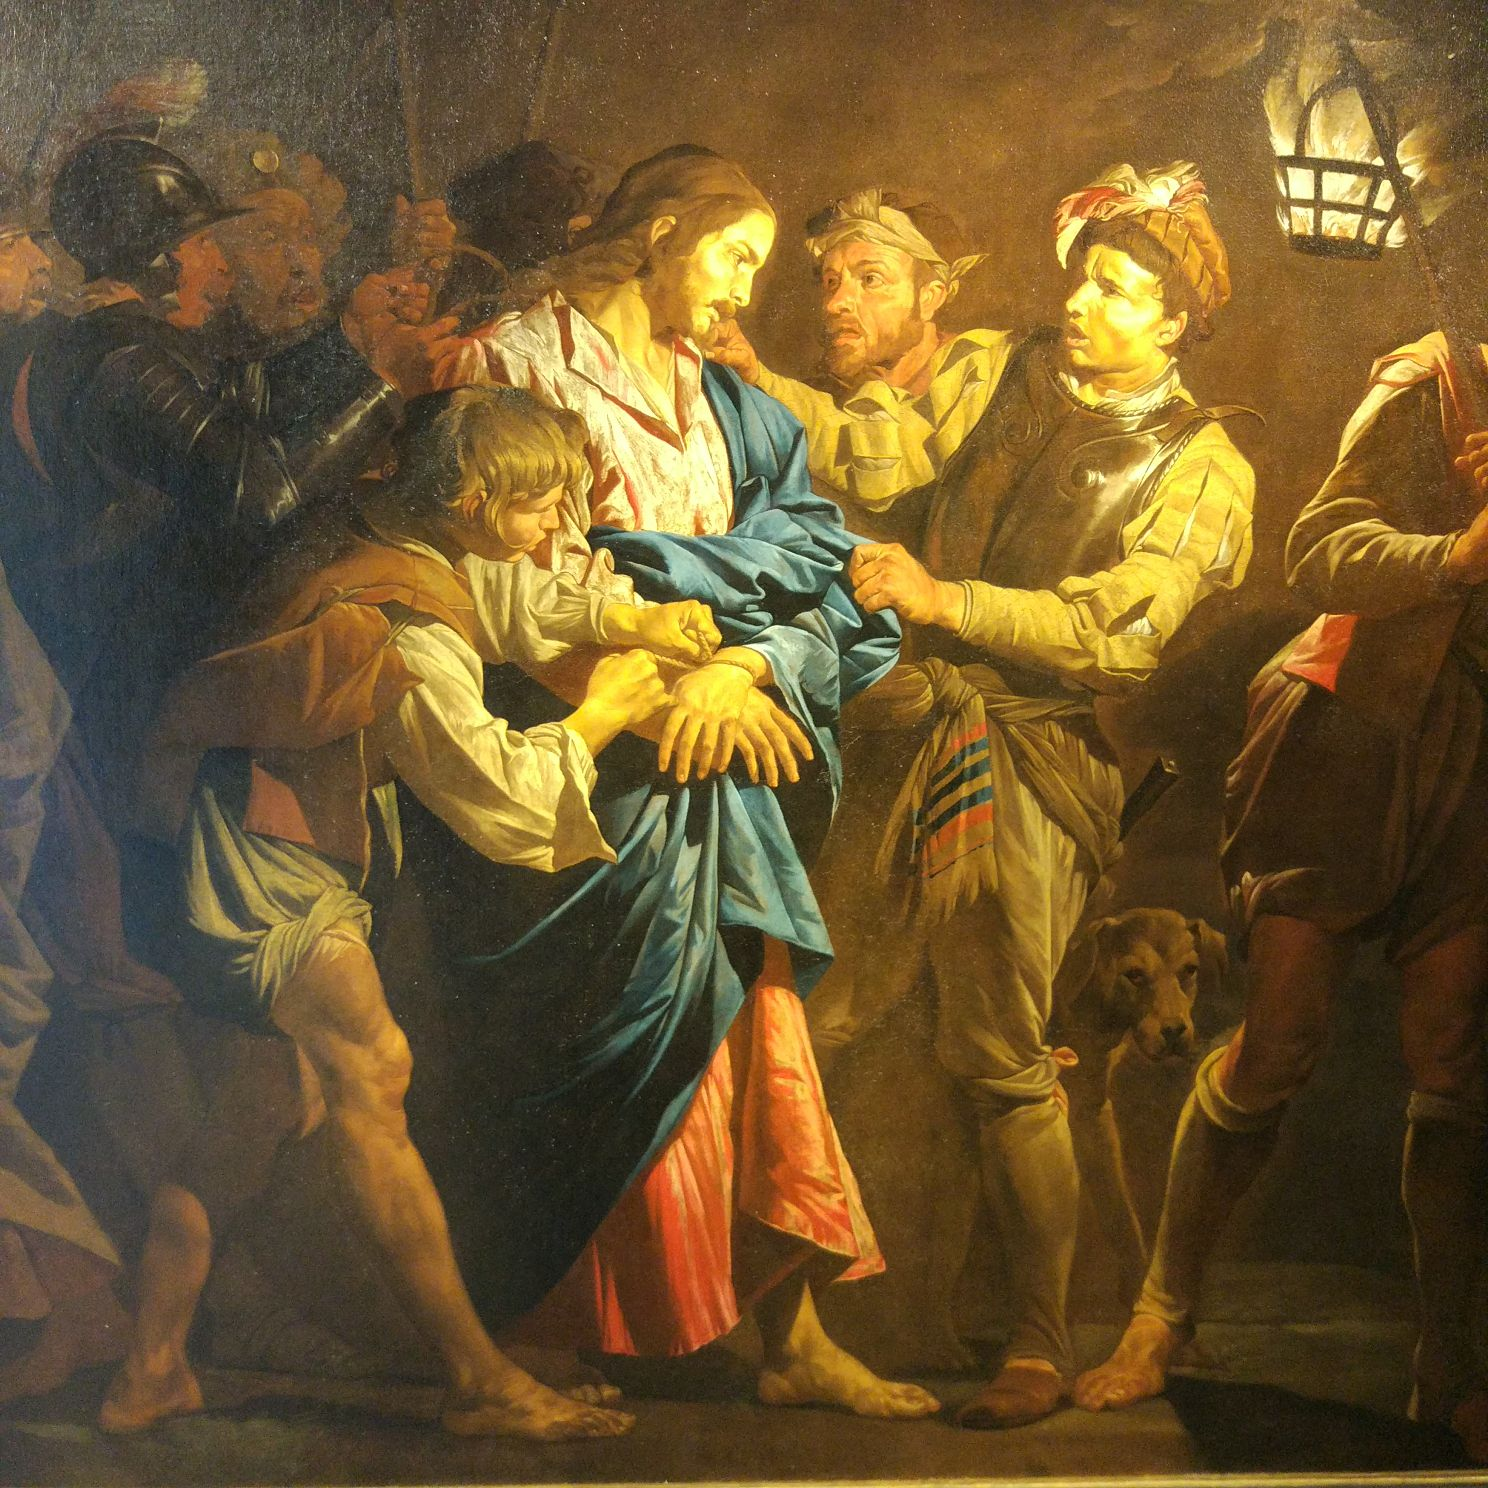 The Capture of Christ, Matthias Stomer , circa 1600 - Northern Italy (?), after 1649), Oil on canvas, 272 x 208 cm